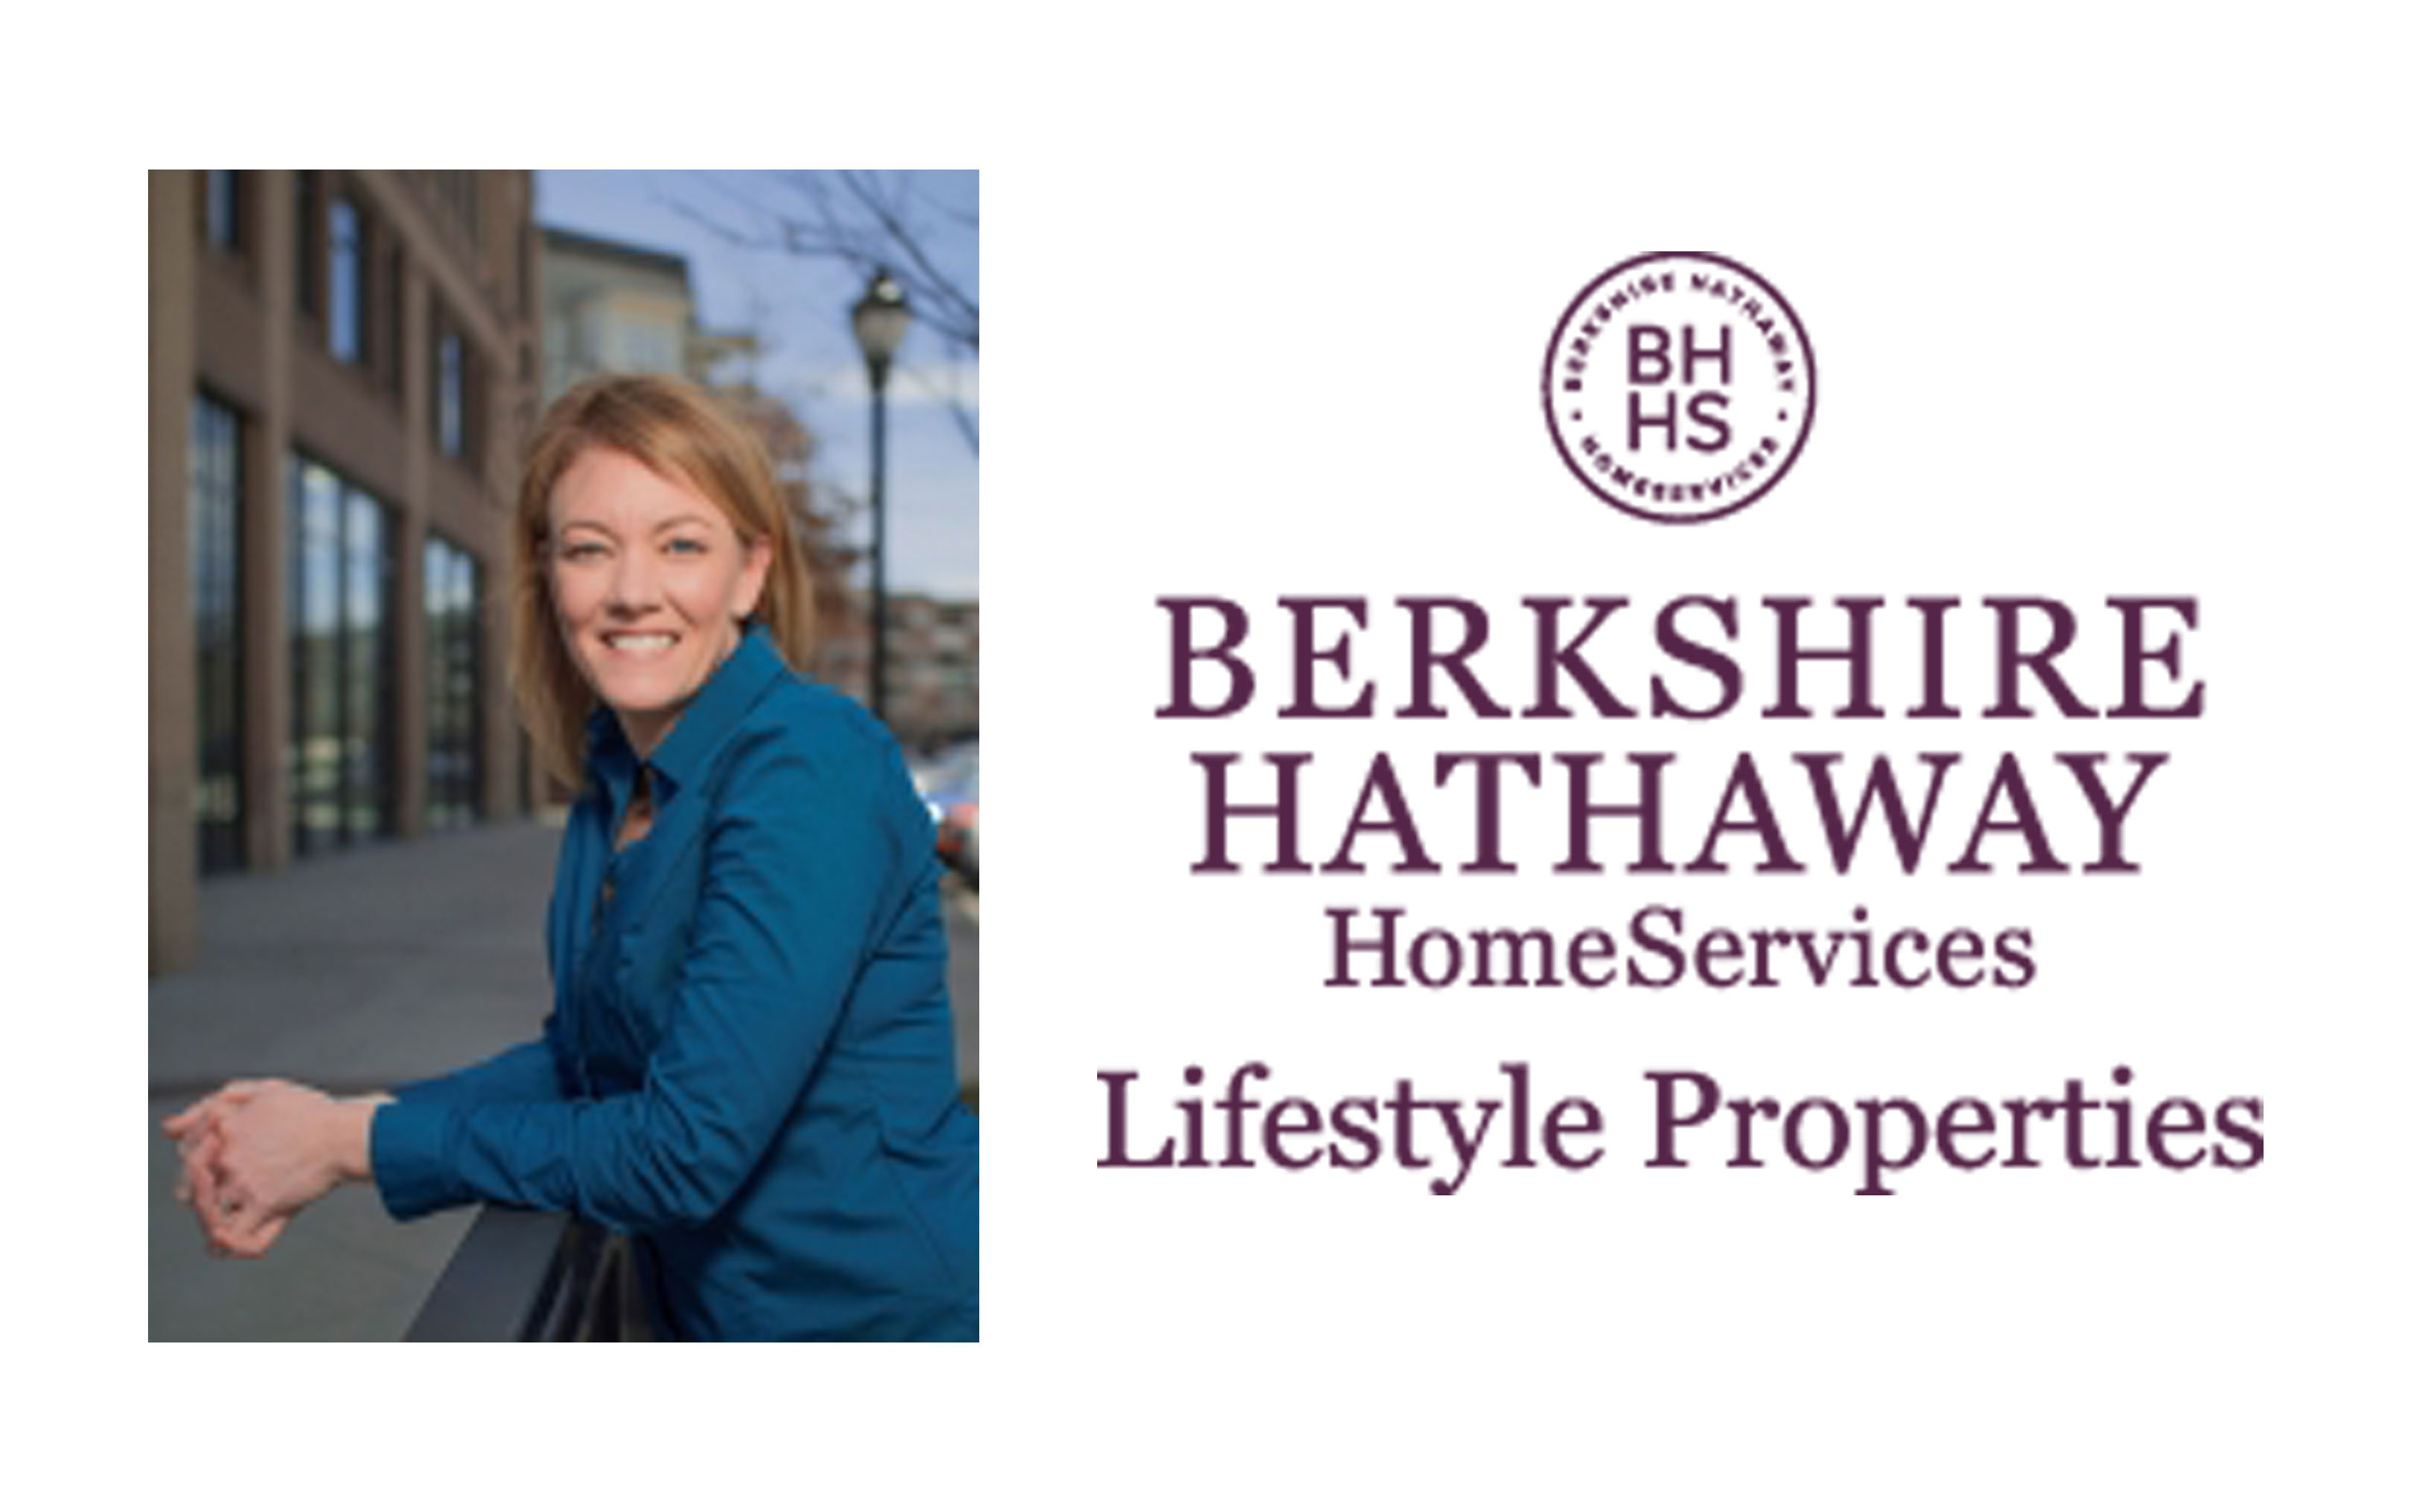 April Sutton, Berkshire Hathaway